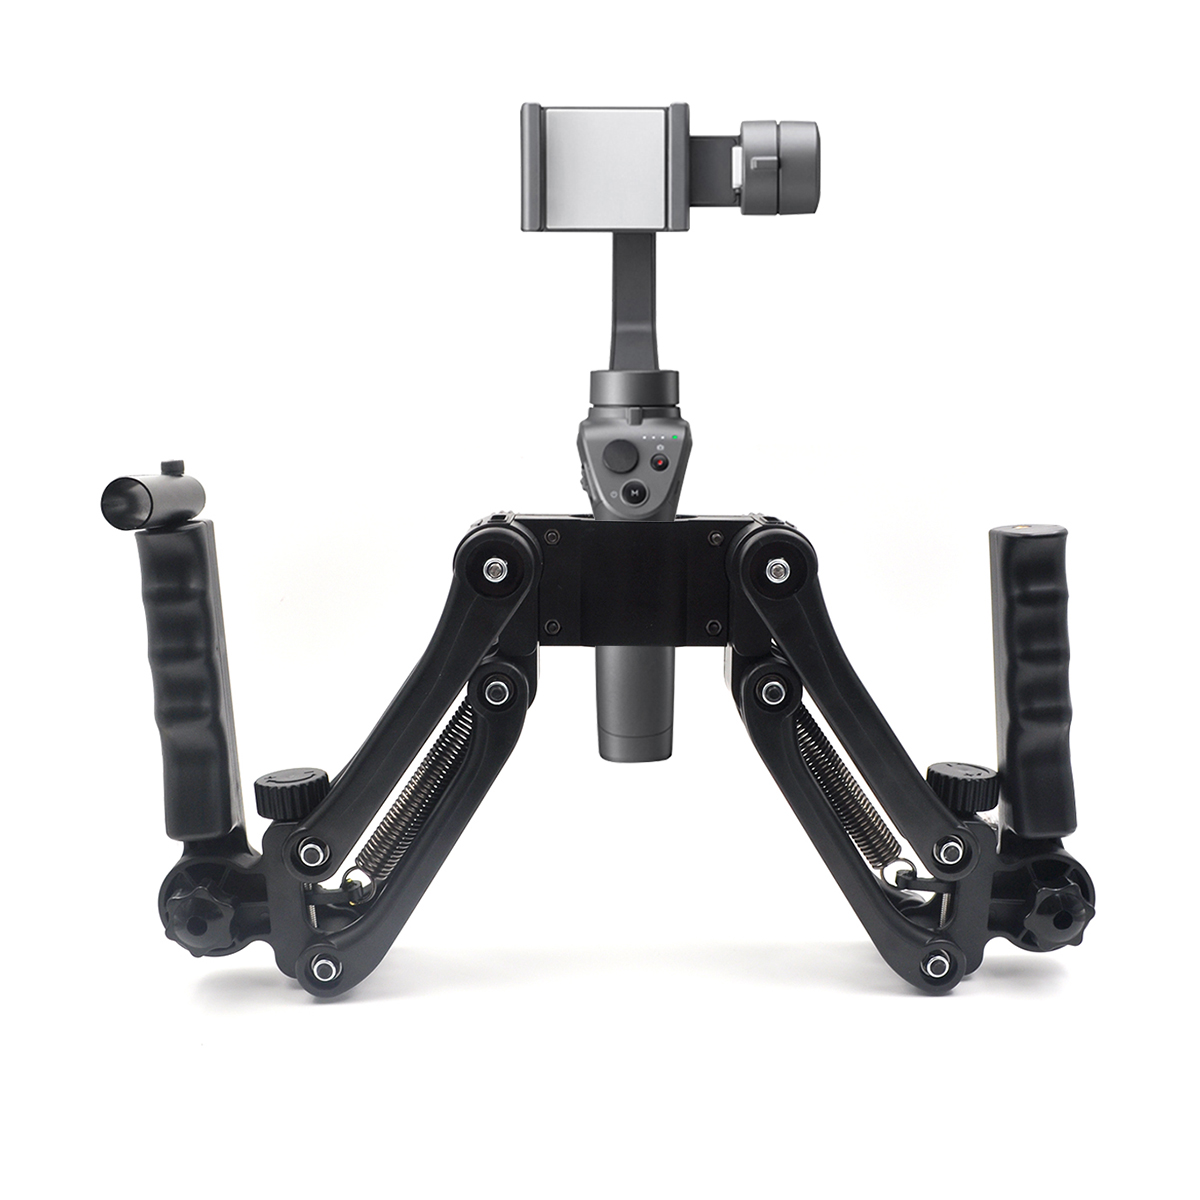 Extension Stand Mount holder 4th Axe cardan stabilisateur pour DJI Ronin S, DJI Osmo plus, osmo Mobile/Pro